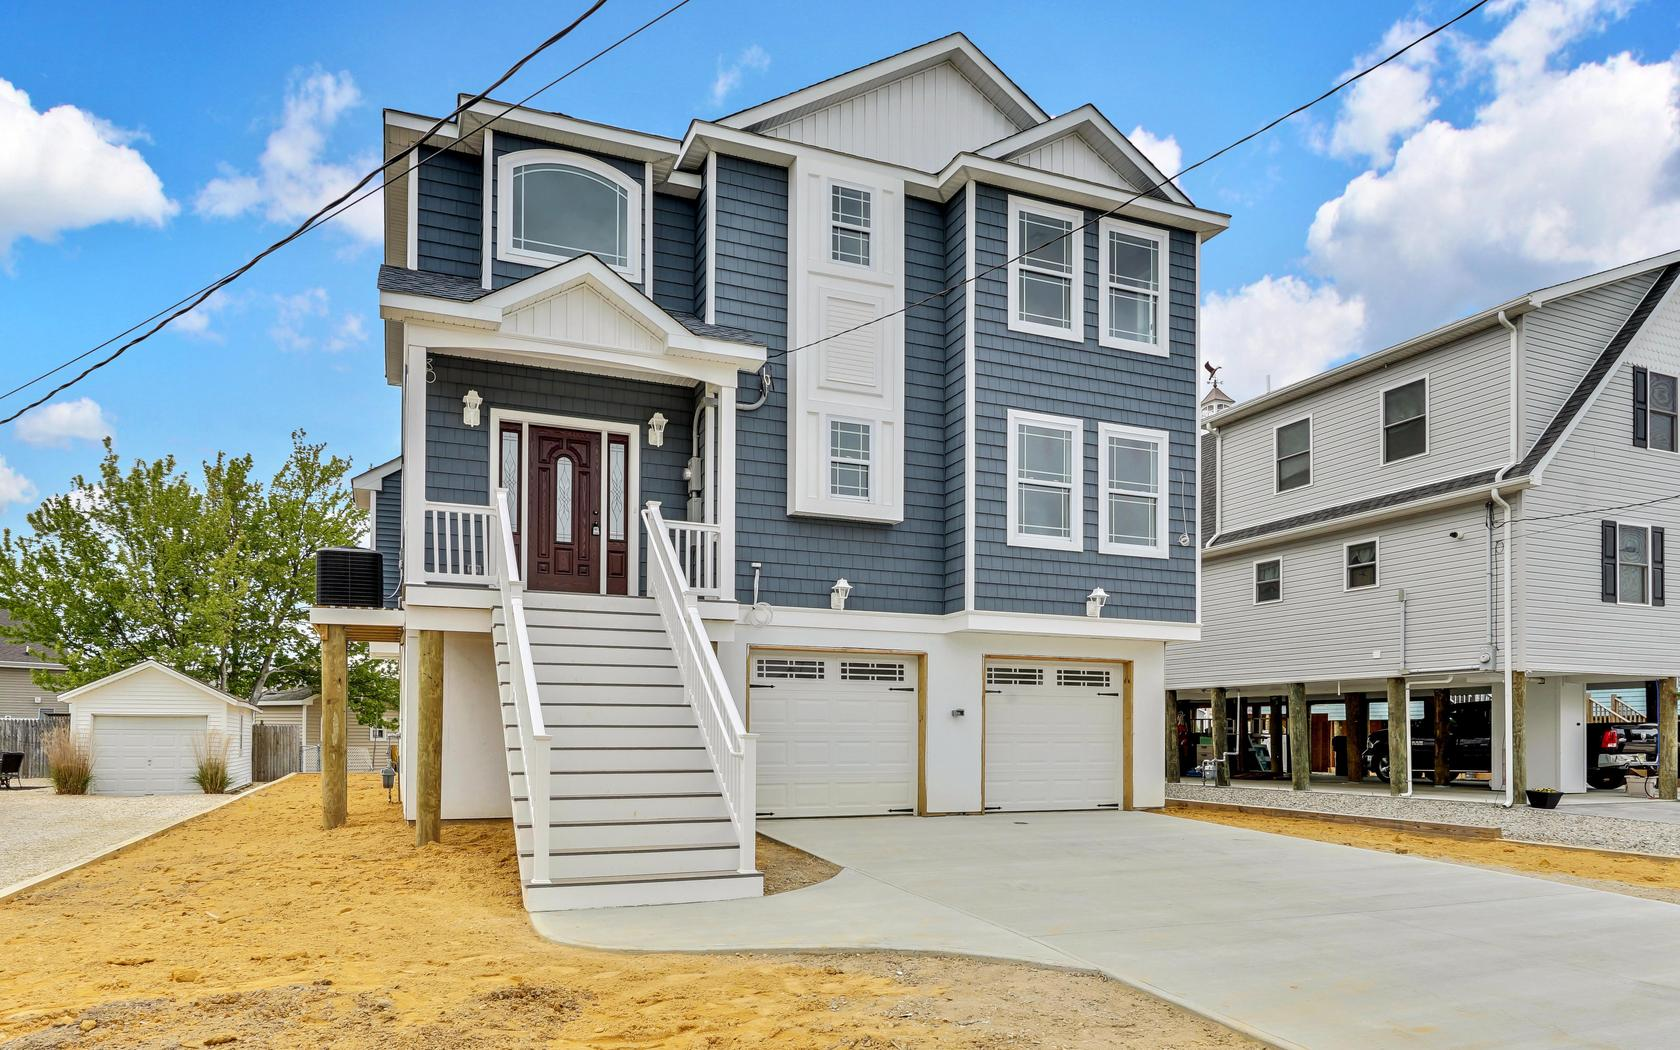 25 Sunrise Way, Toms River, NJ 08753